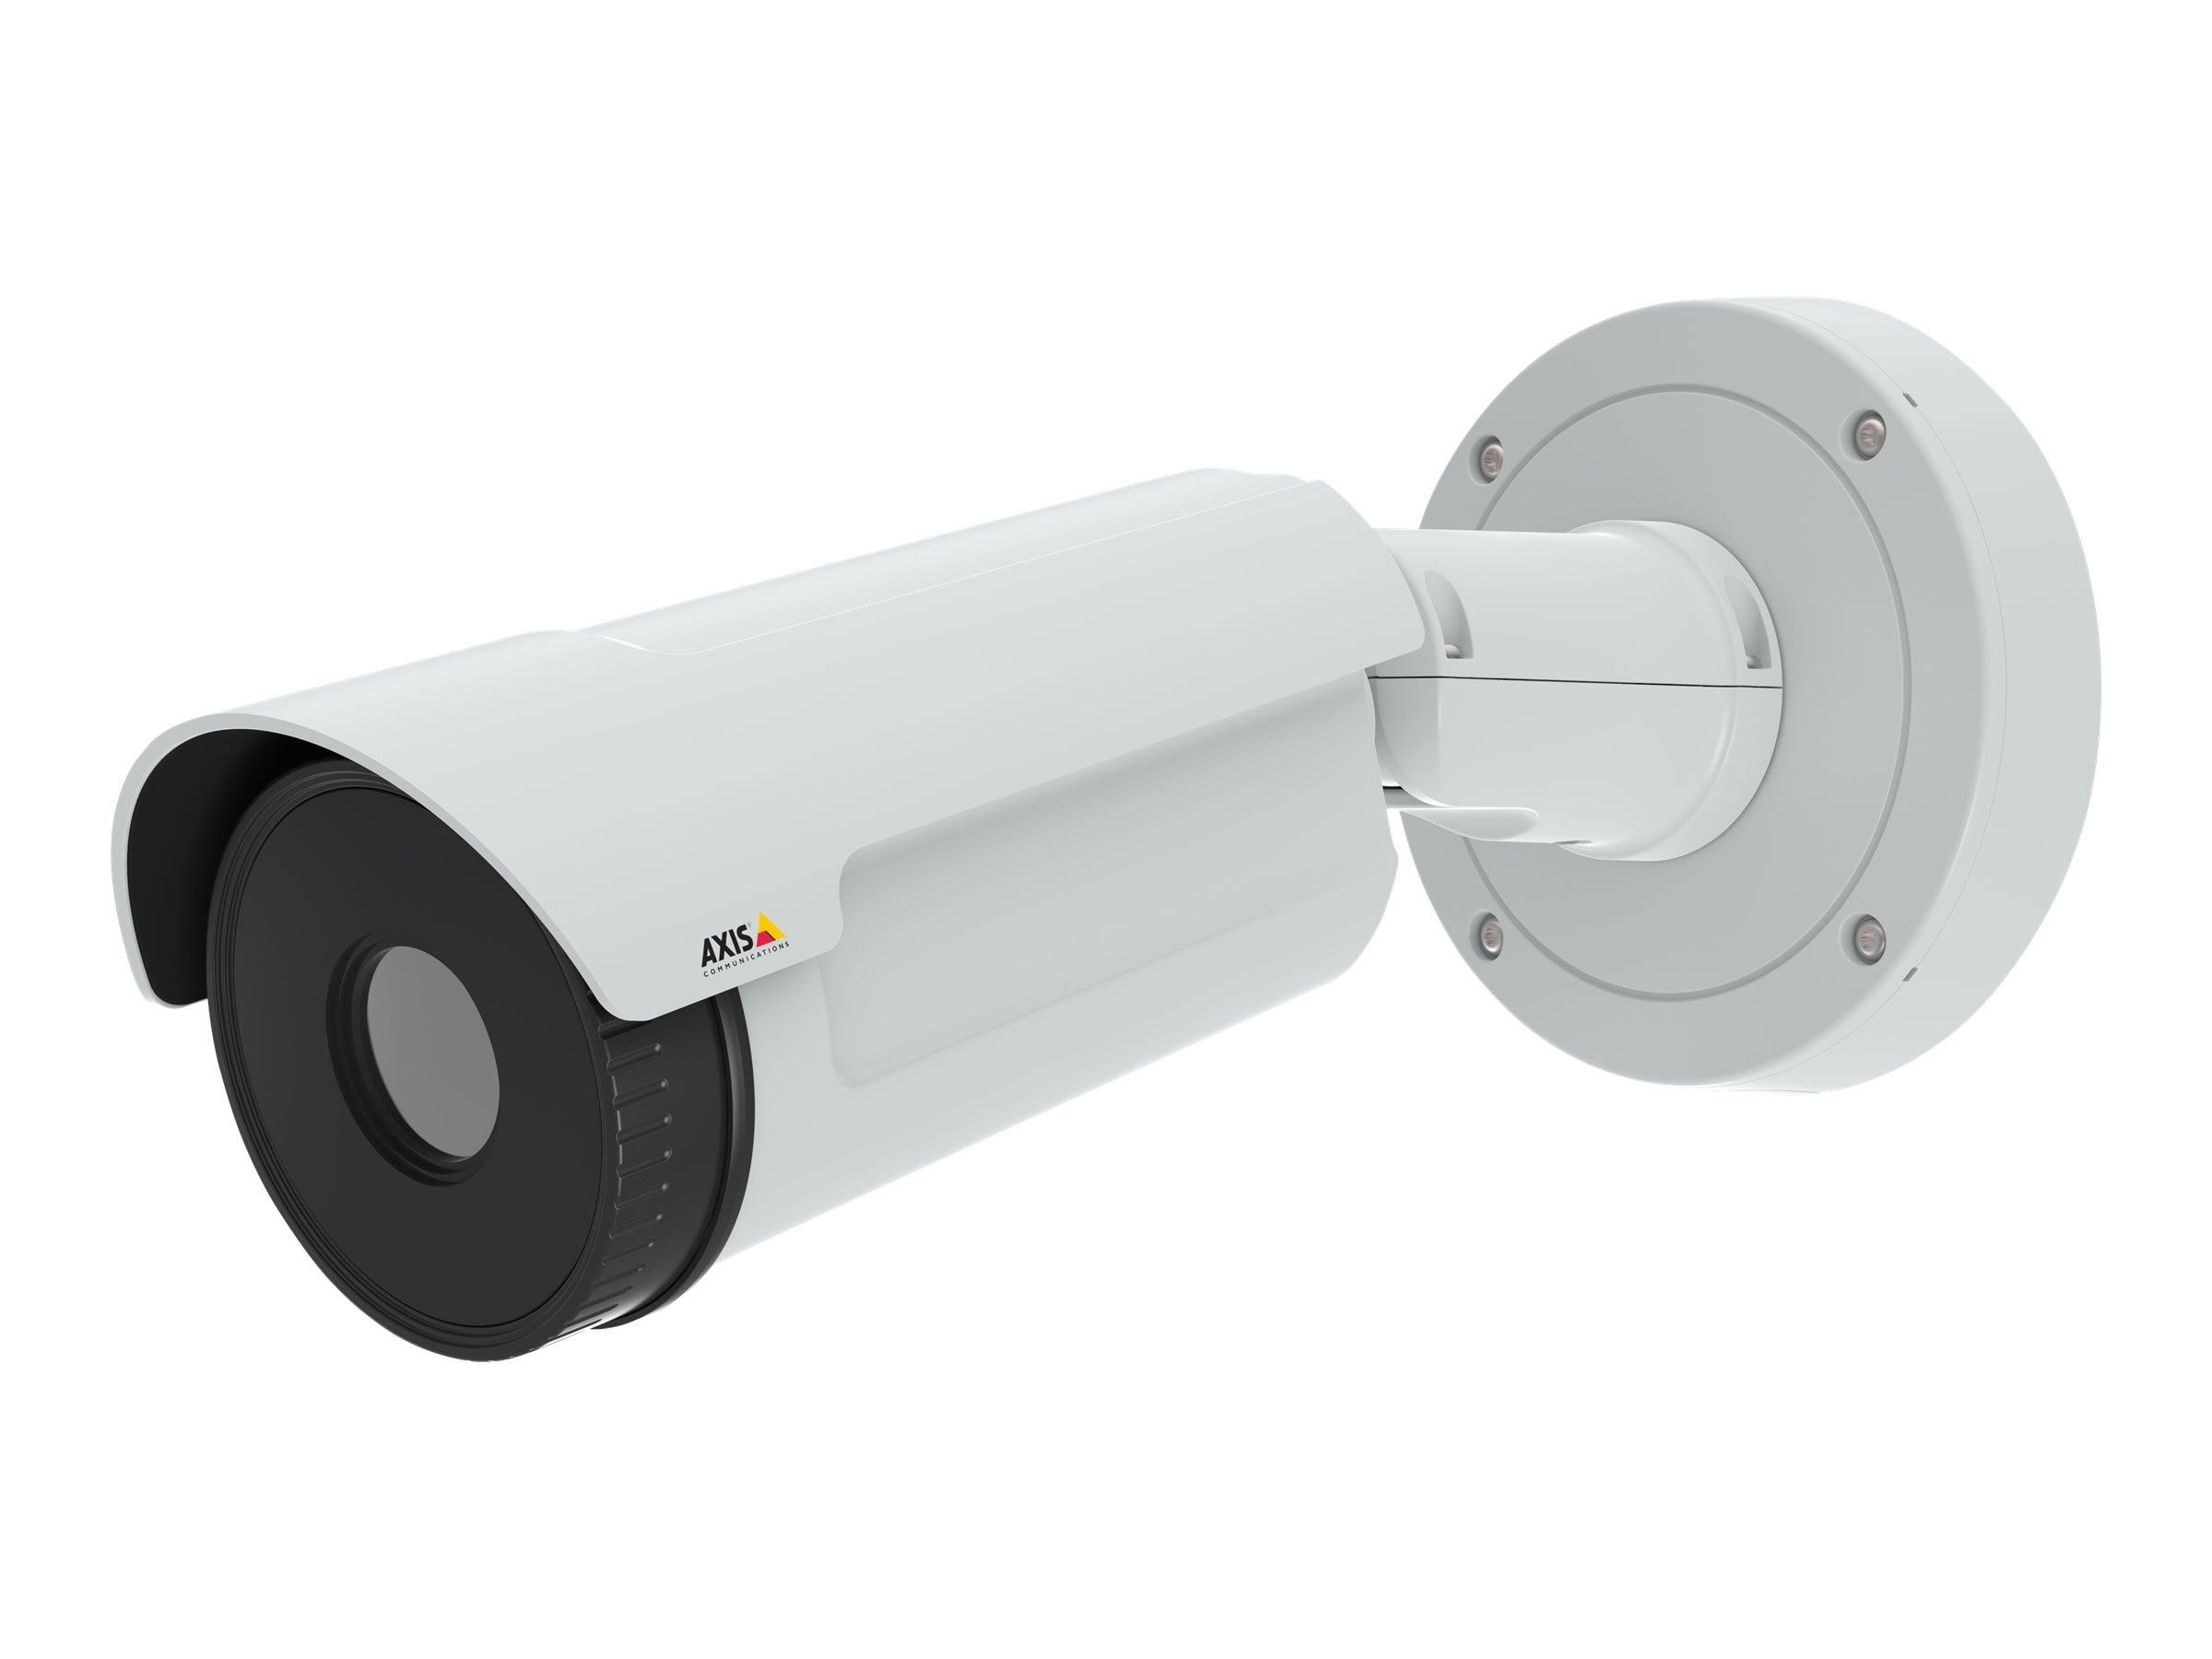 Axis Q2901-E Temperature Alarm Camera with 9mm Lens